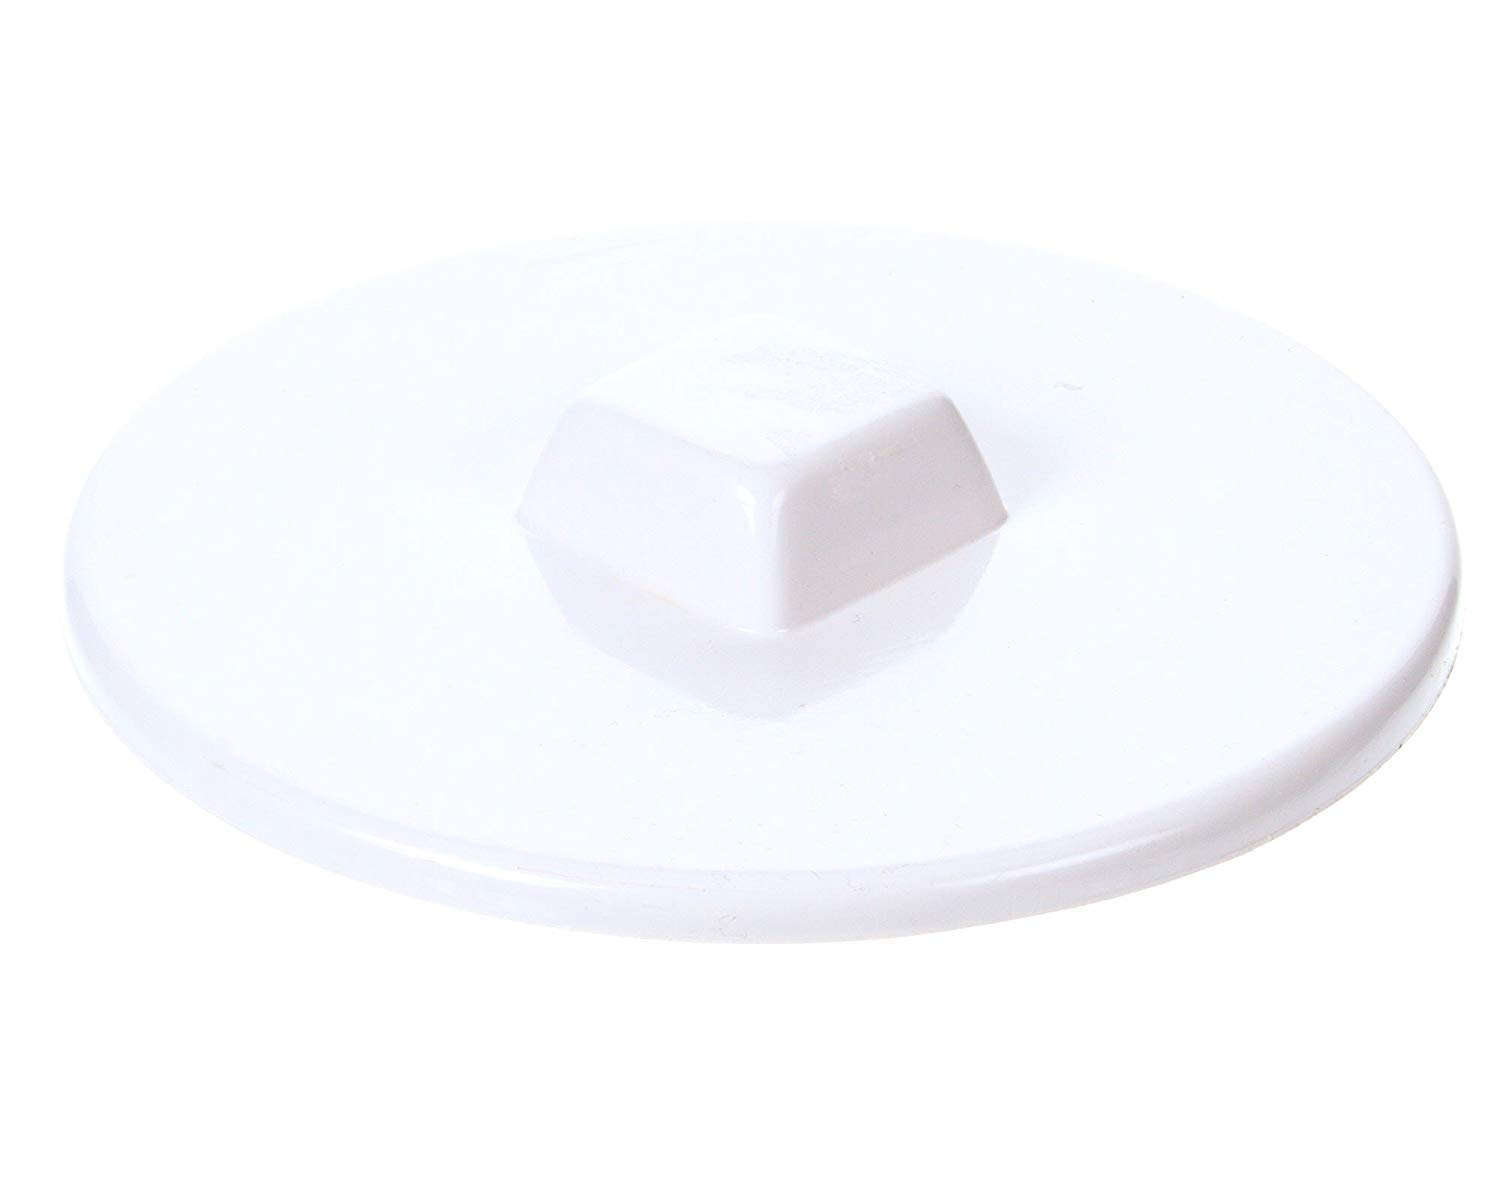 Master-Bilt 44-01084 White Ice Cream Can Cover - Fits Most 3 Gallon Commerical Ice Cream Tubs - 10.25'' Diameter (4)